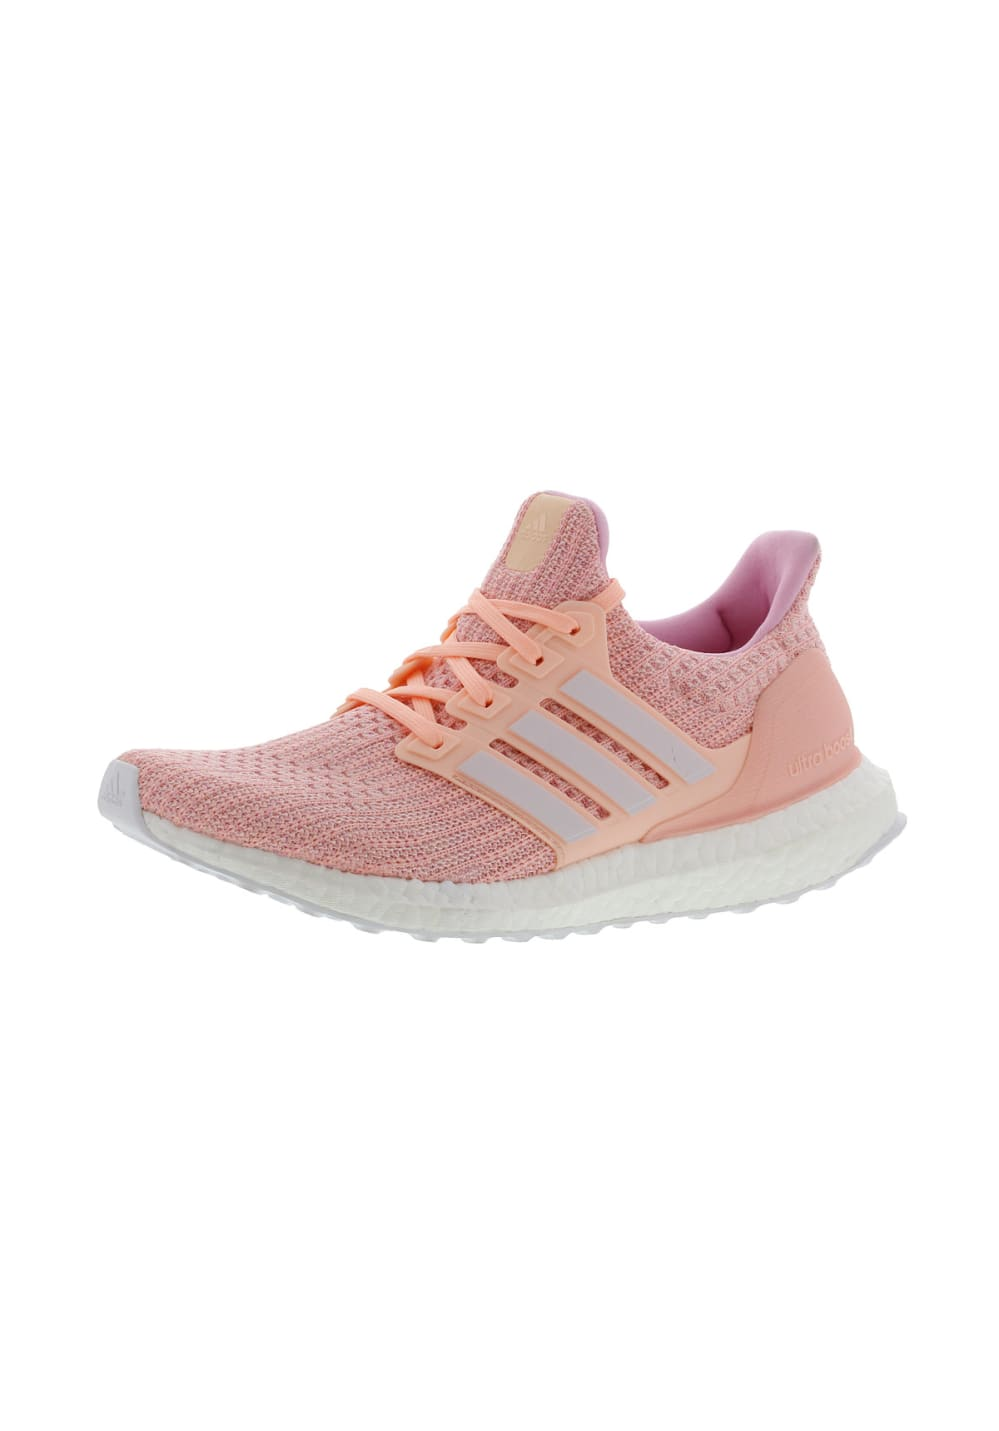 new products 14fd6 e86be adidas Ultra Boost - Running shoes for Women - Pink